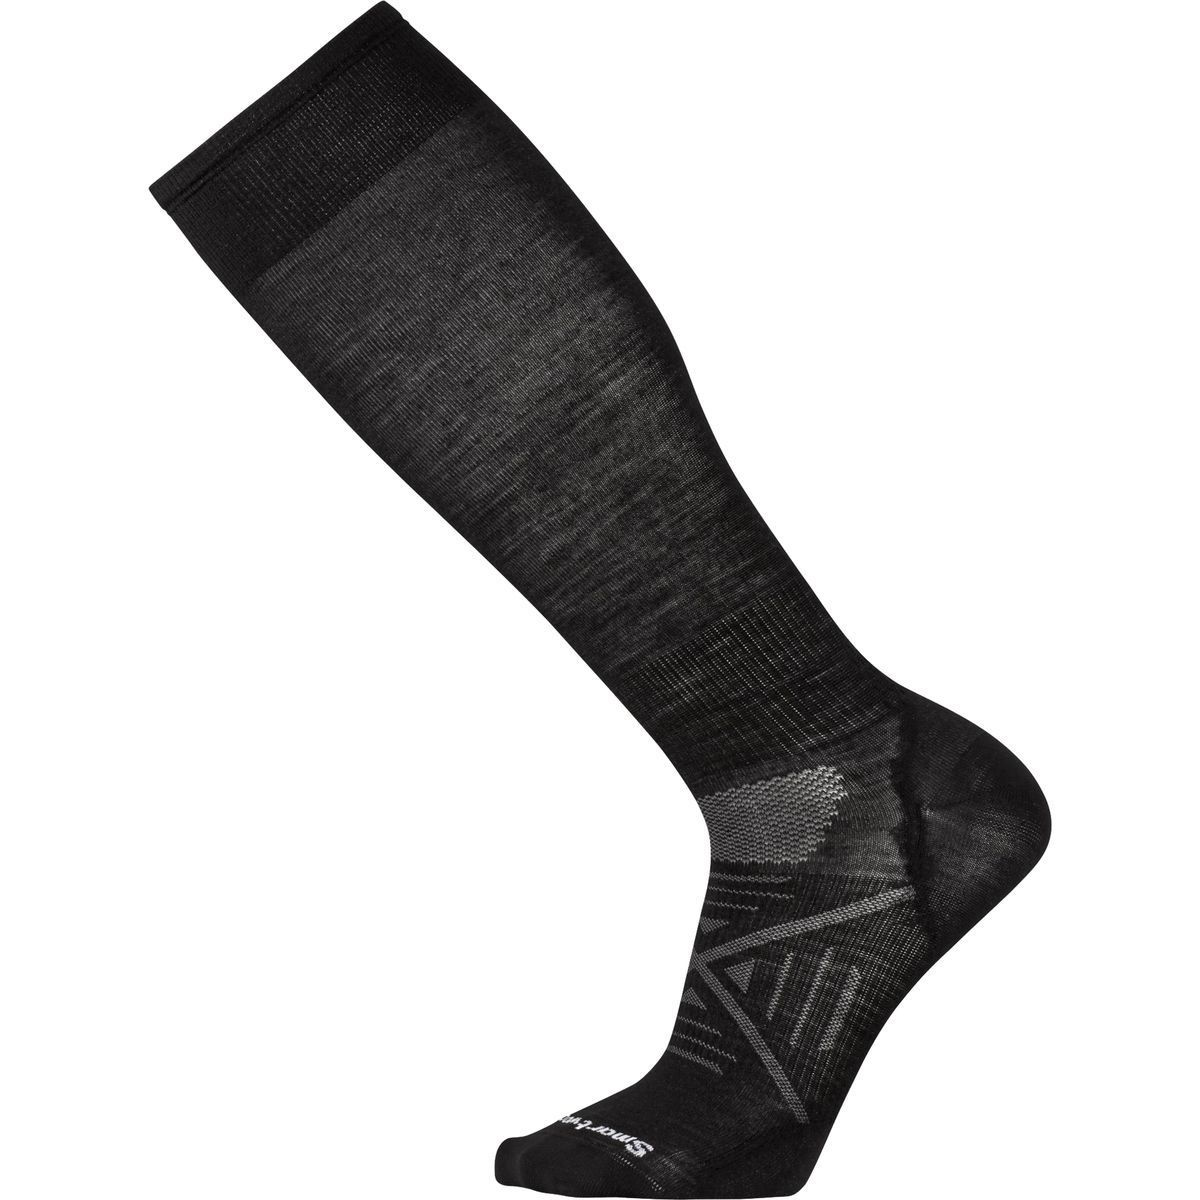 c902083cbf31d How To Keep Your Feet Warm While Skiiing | Family Skier